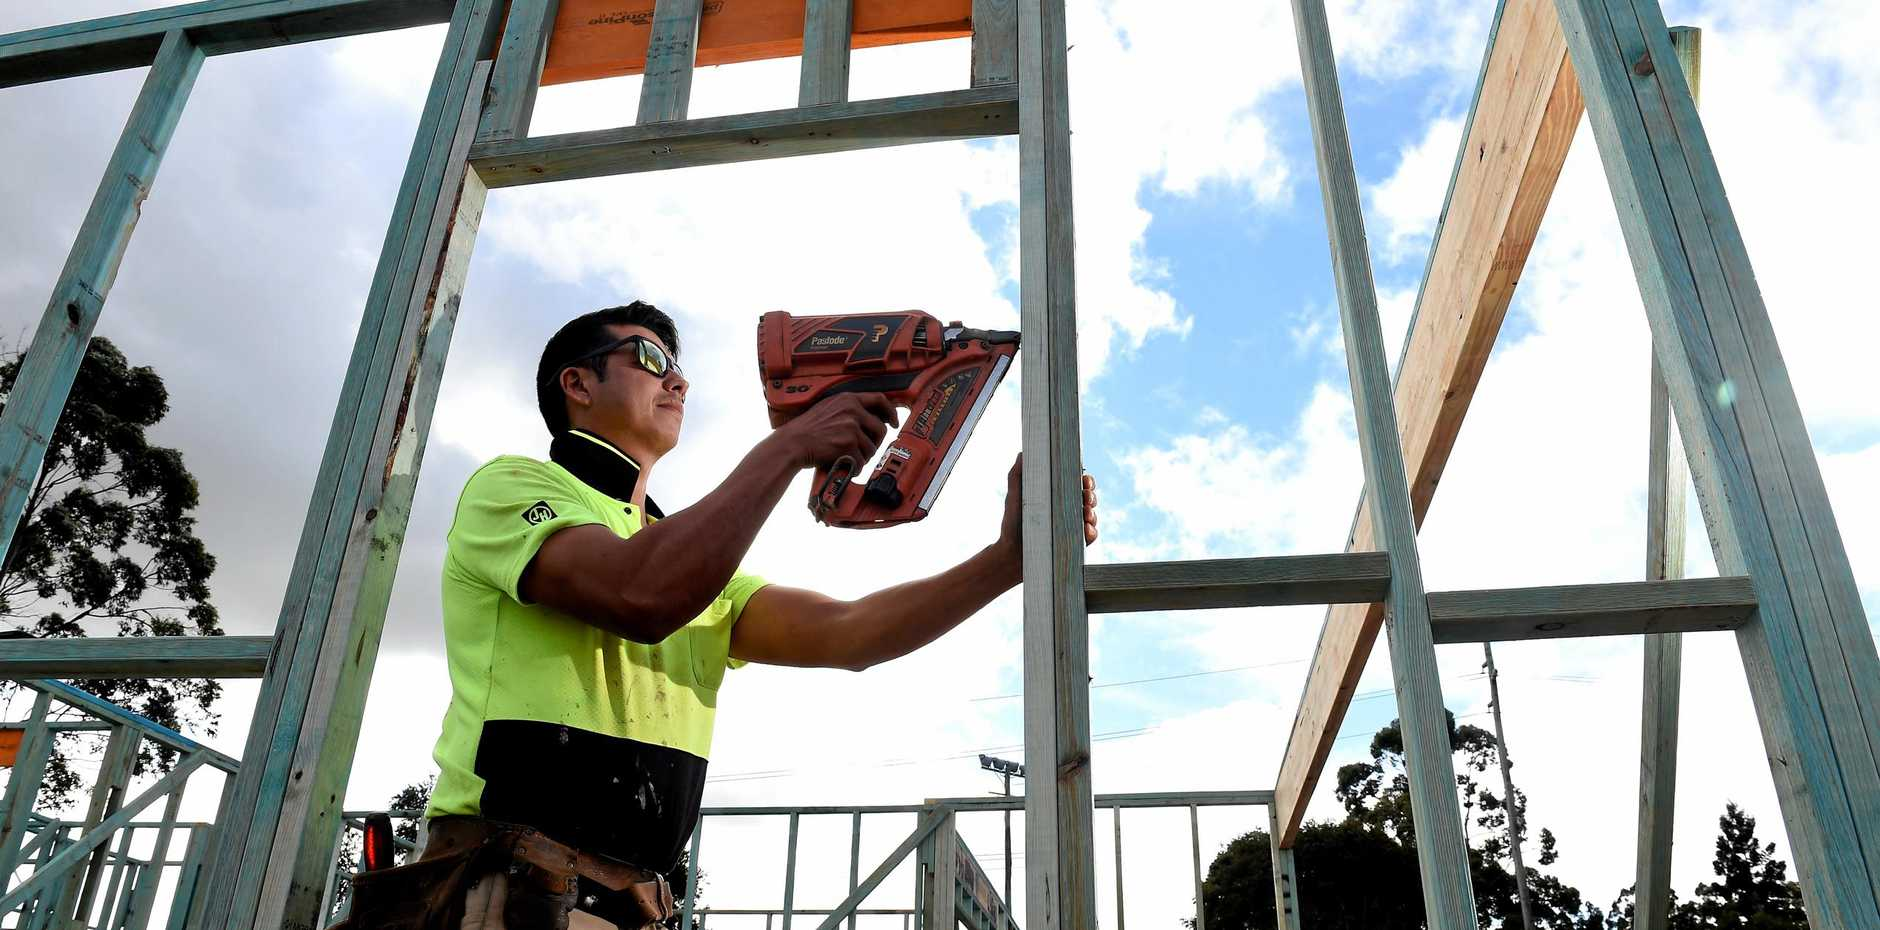 Sole trader Cliff Hayward at work in the Lismore region which has seen significant housing expansion. Photo Marc Stapelberg / The Northern Star